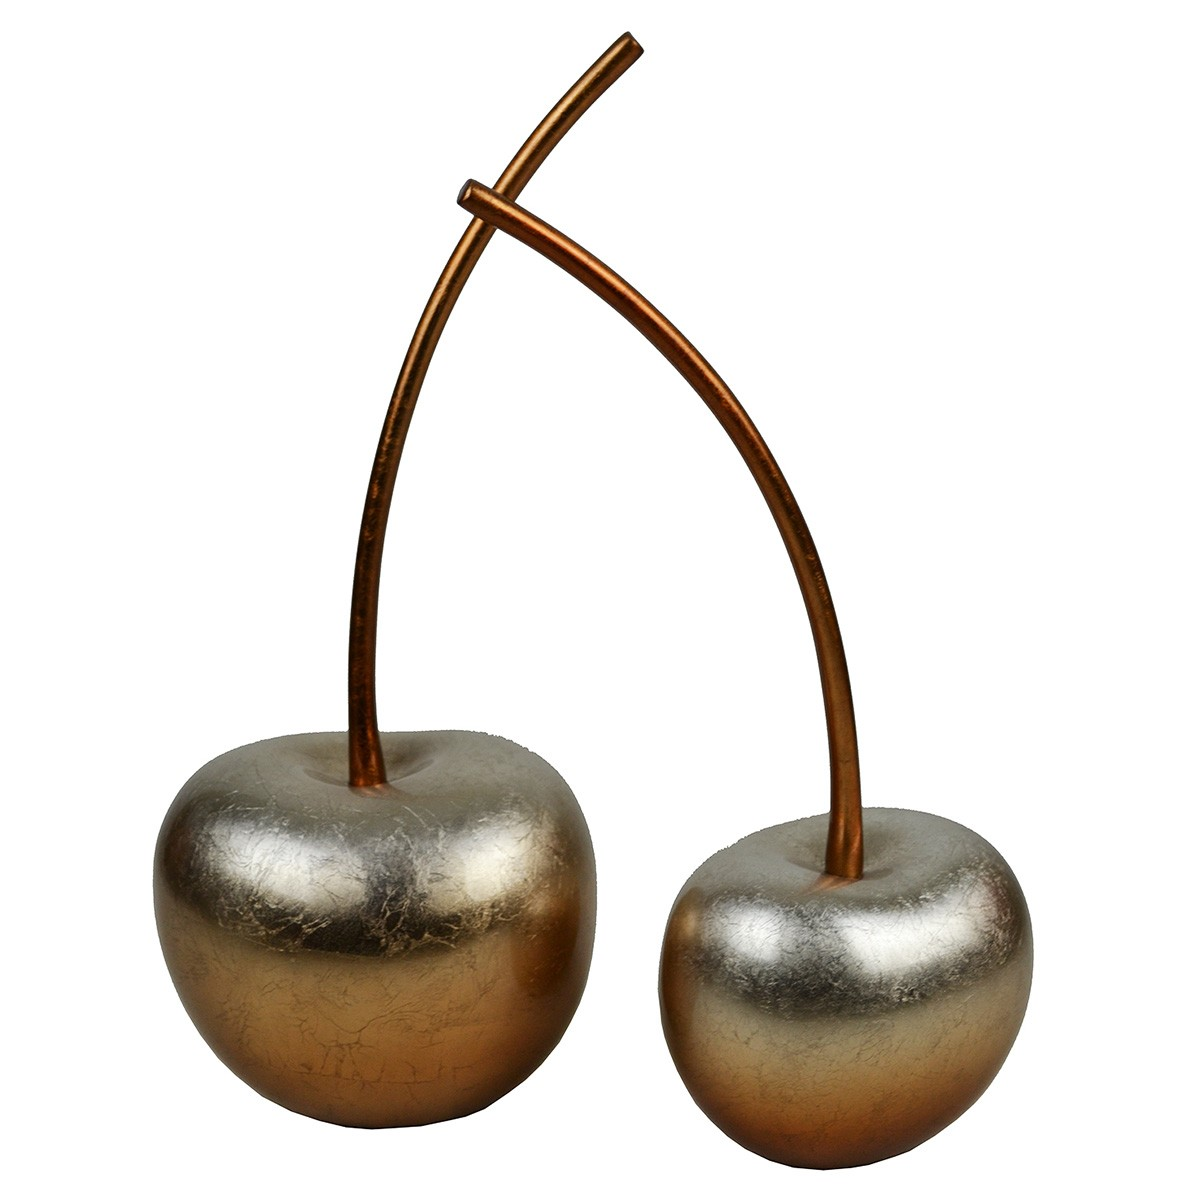 Parri 2 Piece Lacquered Polyresin Cherry Decor Set, Copper